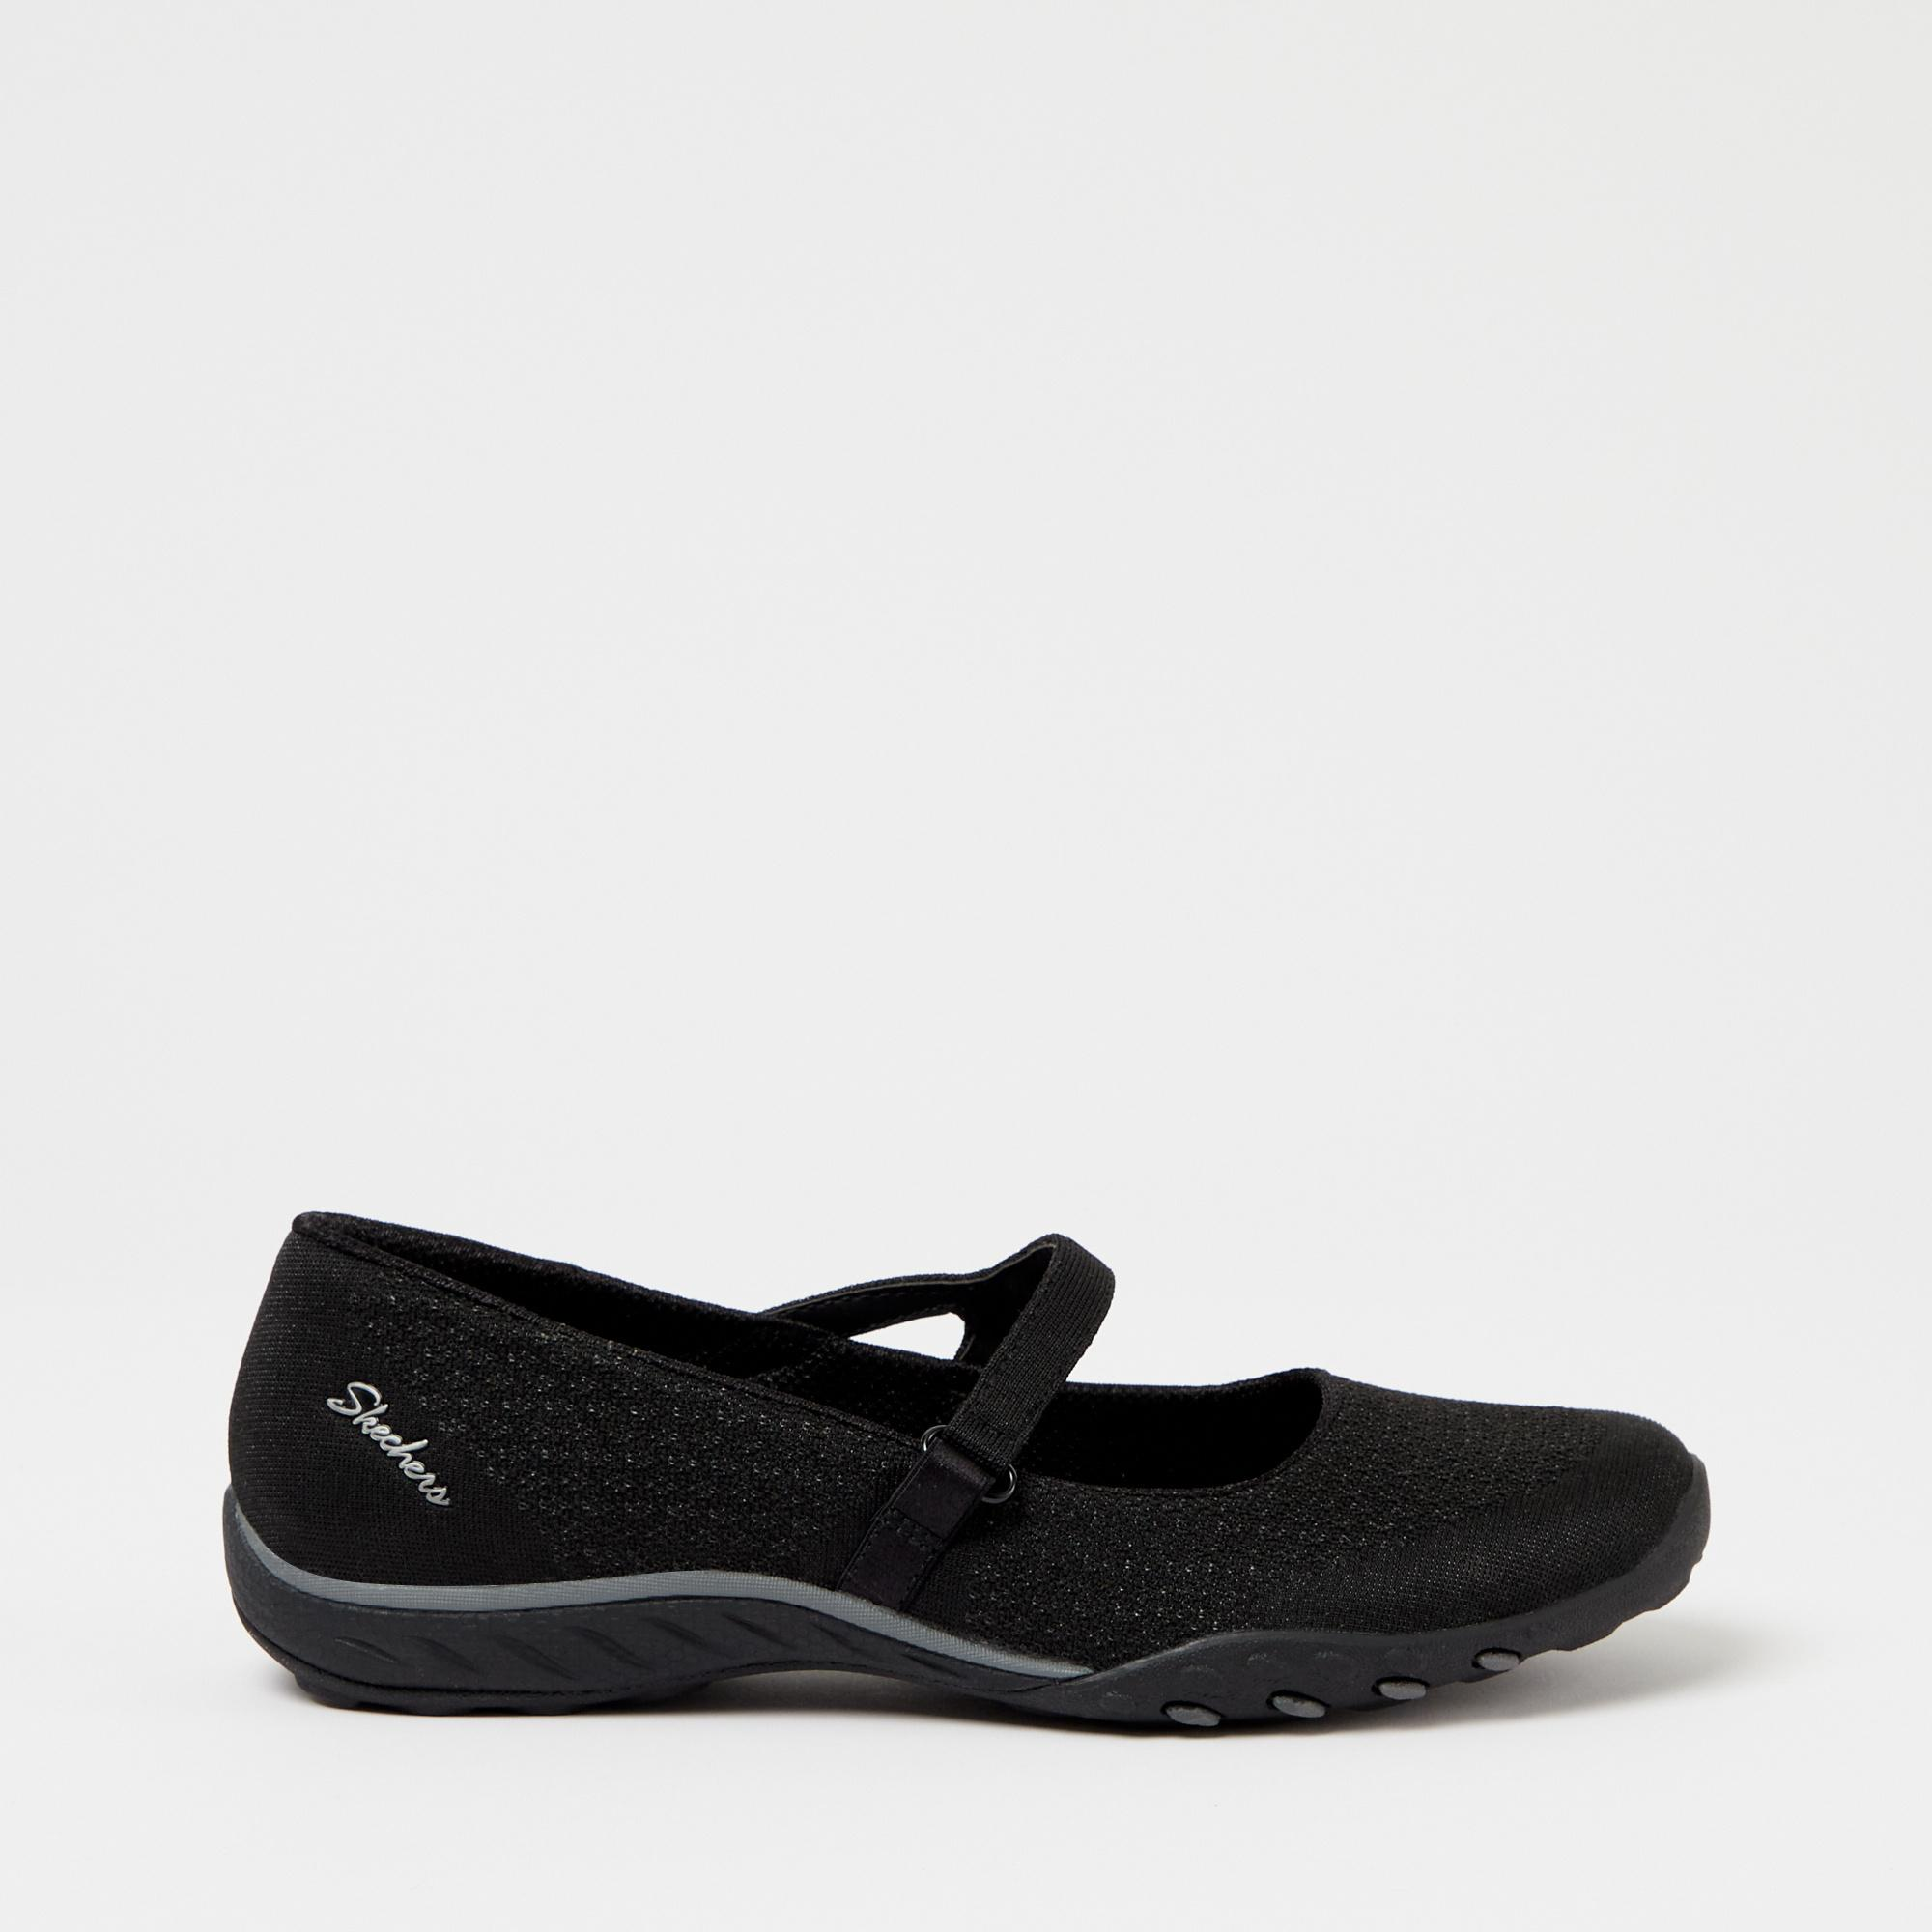 skechers sale shoes